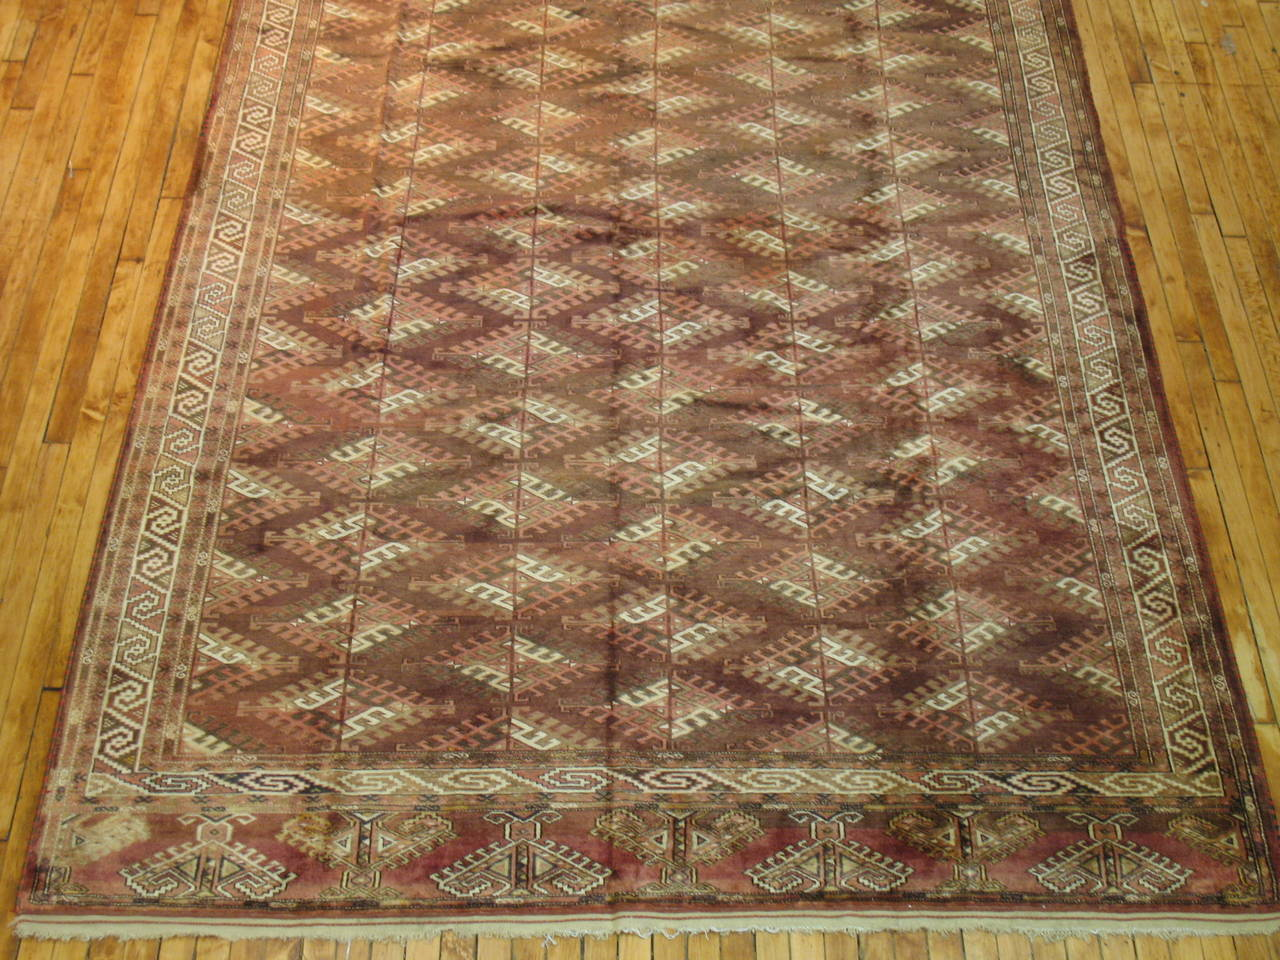 Rare size Turkoman rug. A Turkmen rug is a type of handmade floor-covering textile traditionally originating in Central Asia. Turkmen rugs were produced by the Turkmen tribes who are the main ethnic group in Turkmenistan and are also found in